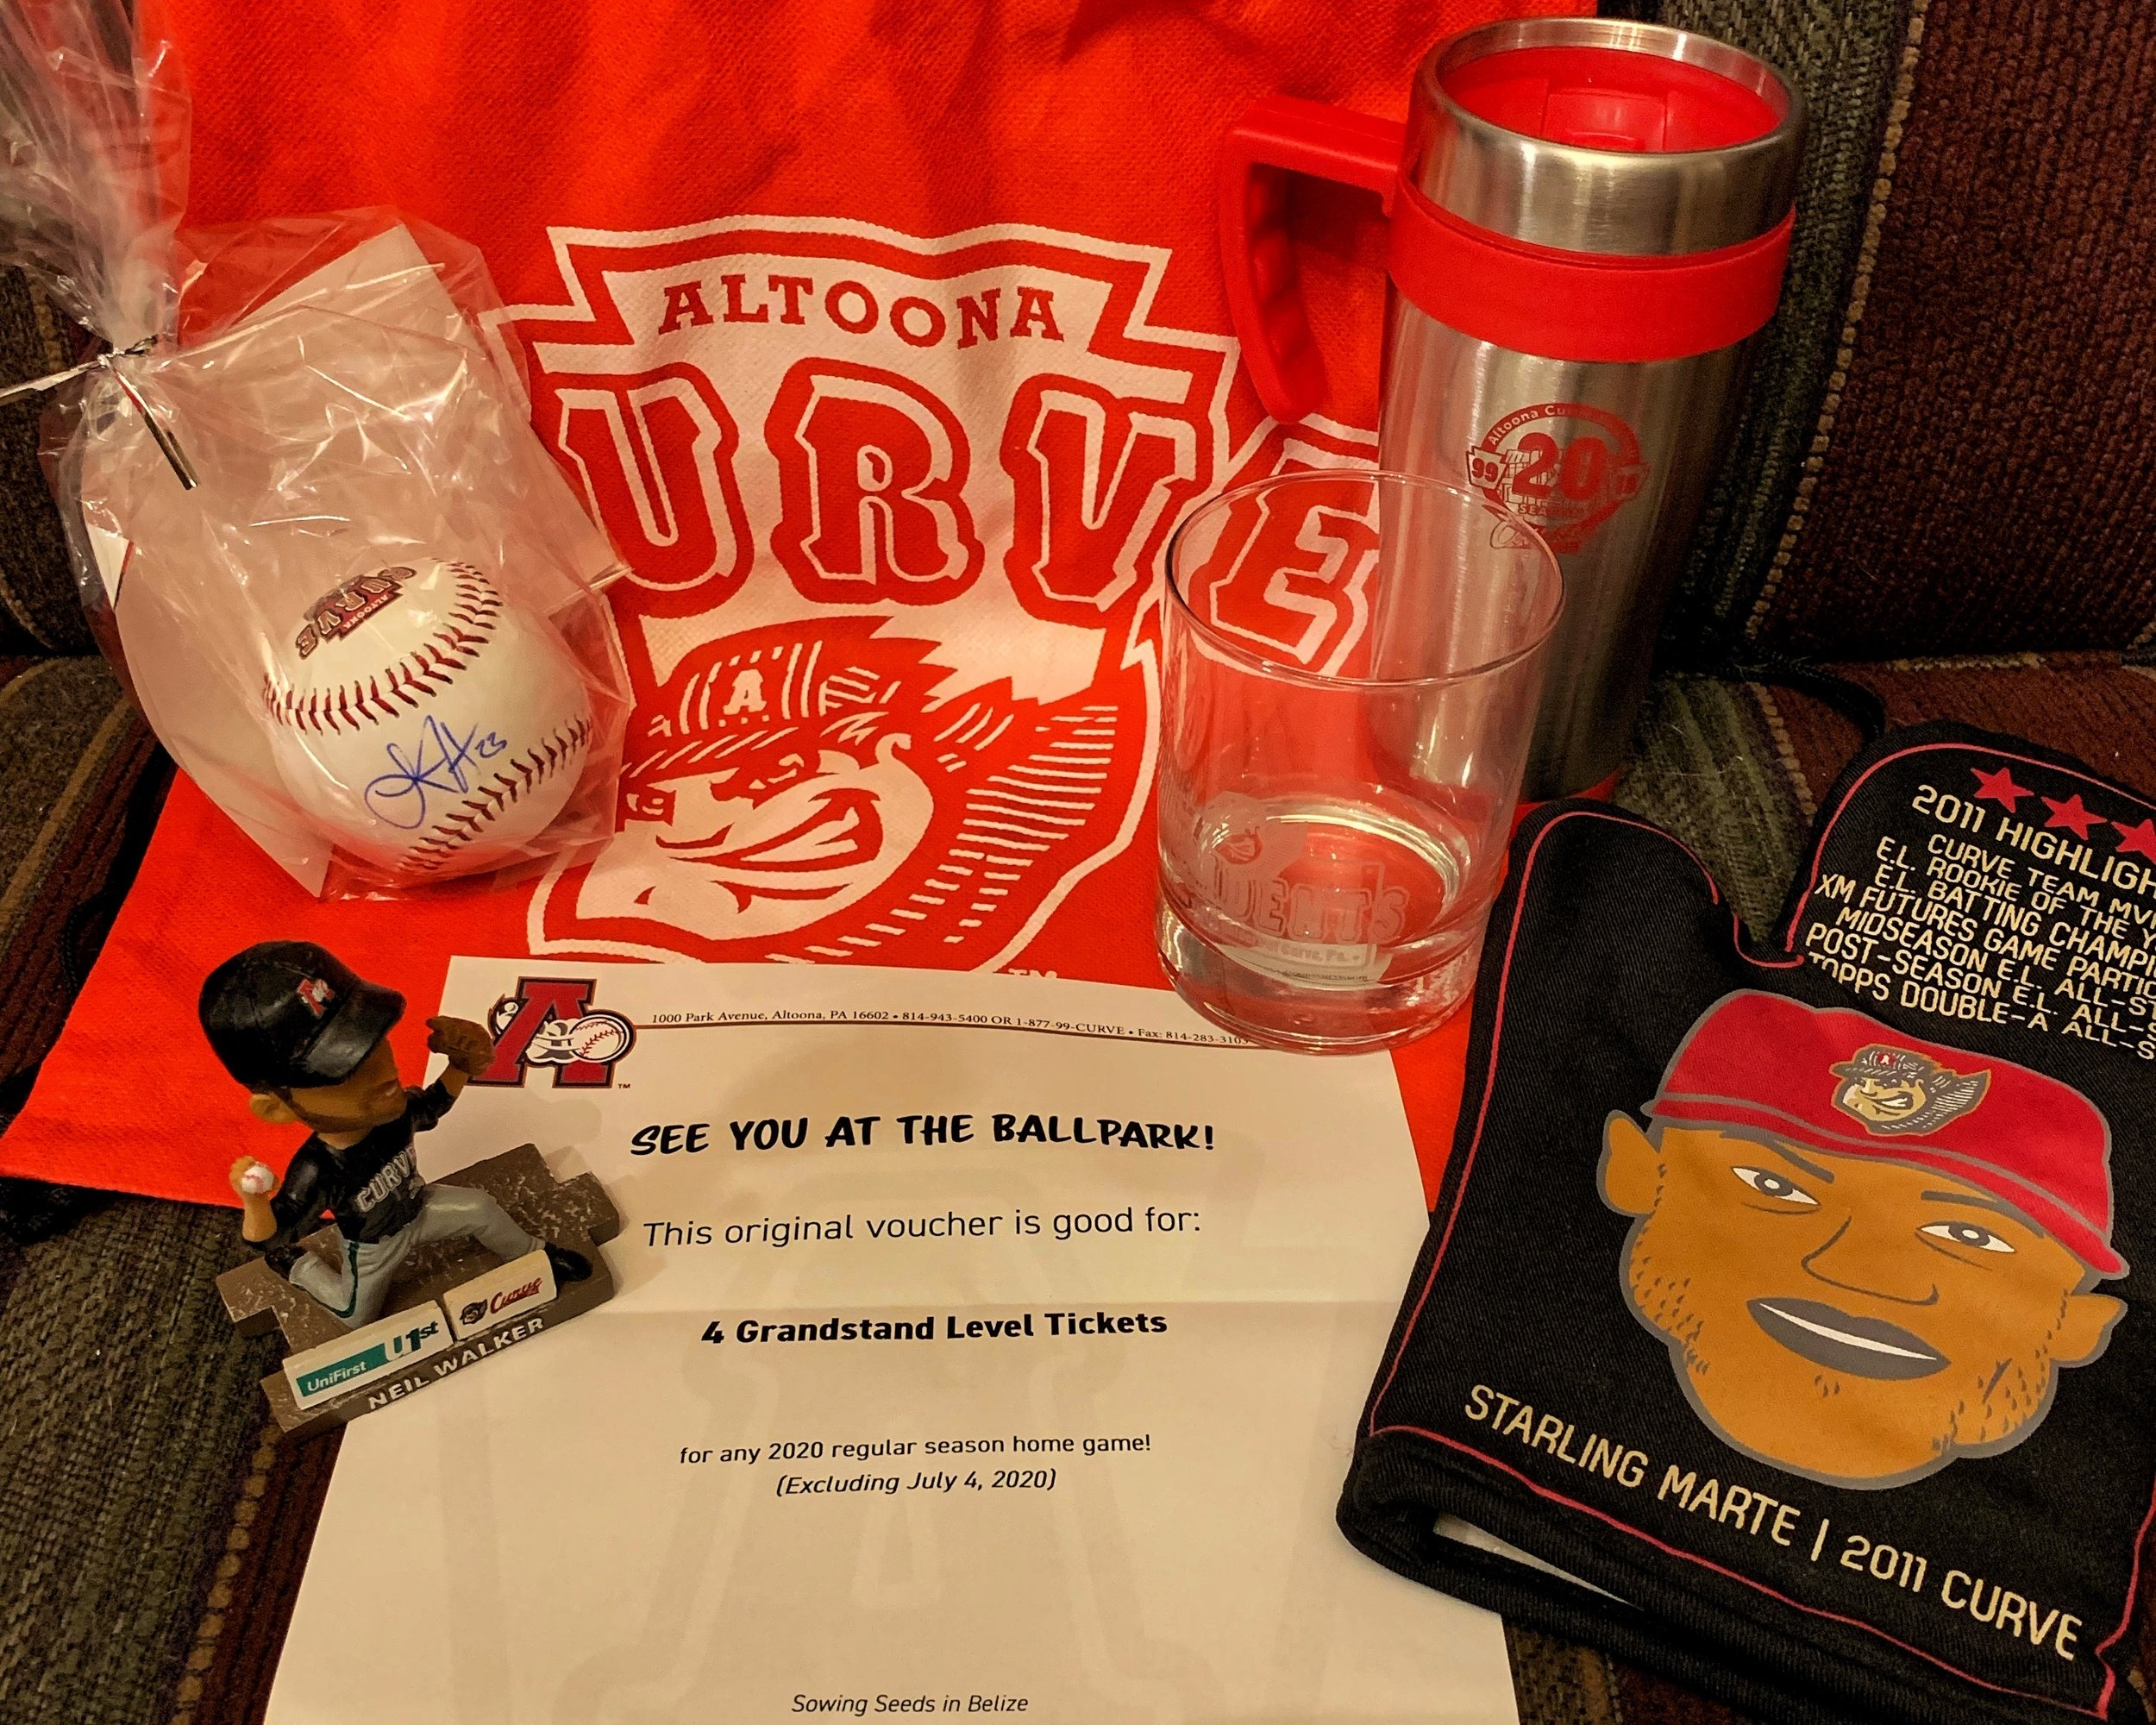 Altoona Curve Gift Pack - This pack includes: 4 Grandstand tickets for the 2020 season, a tumbler, insulated mug, bobble-head, autographed baseball, and a Collectors Starling Marte oven mit.Estimated Value $100